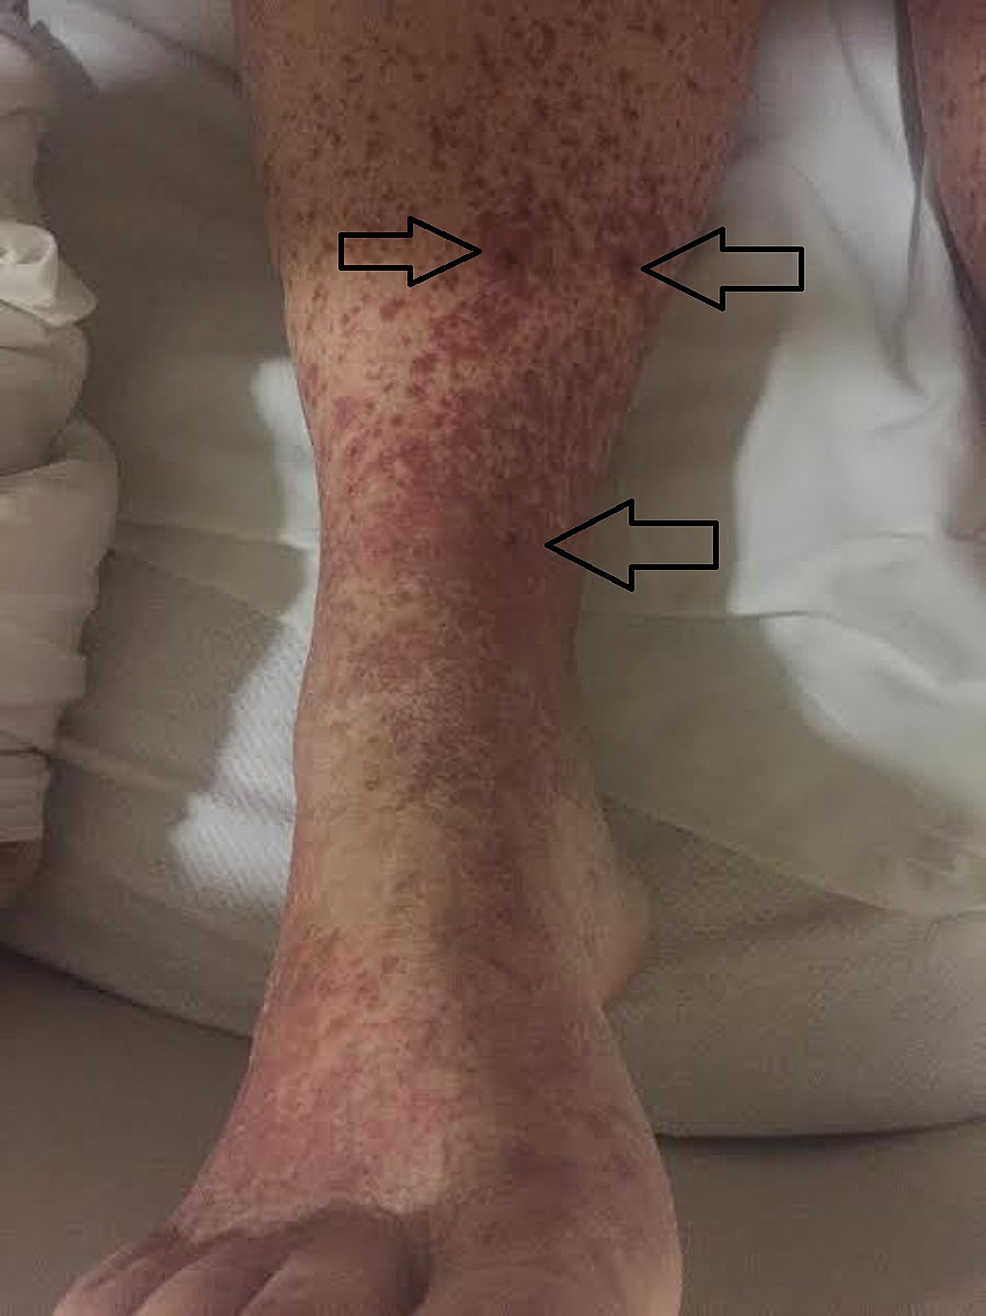 Unilateral-view-of-pigmented-purpuric-macules-coalescing-into-purpuric-plaques-on-lower-extremities-bilaterally